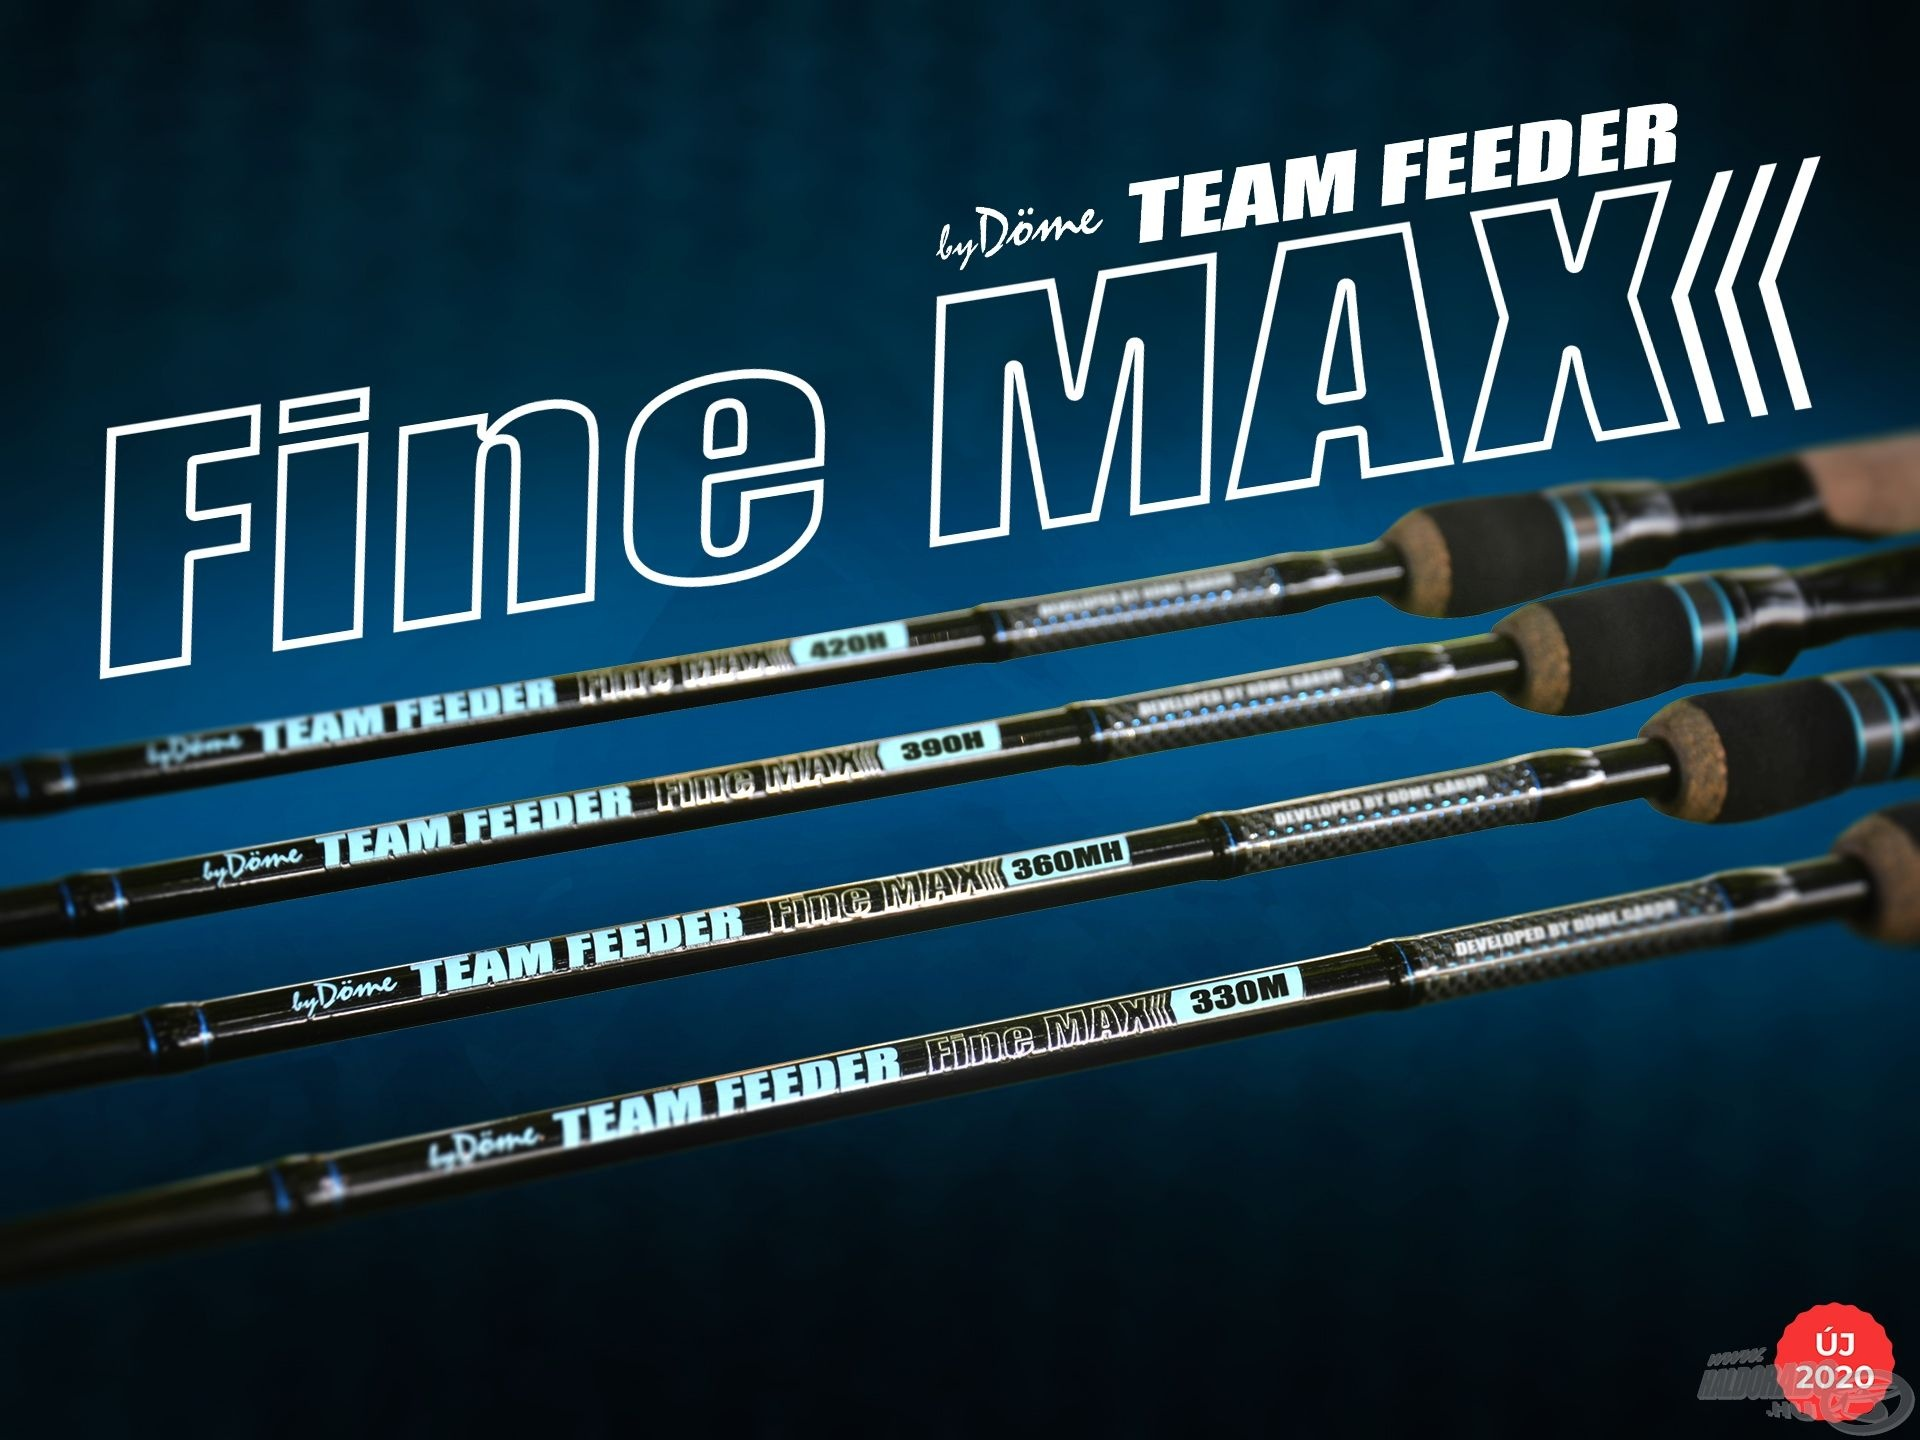 By Dome Team Feeder Fine Max 360MH 40-80G